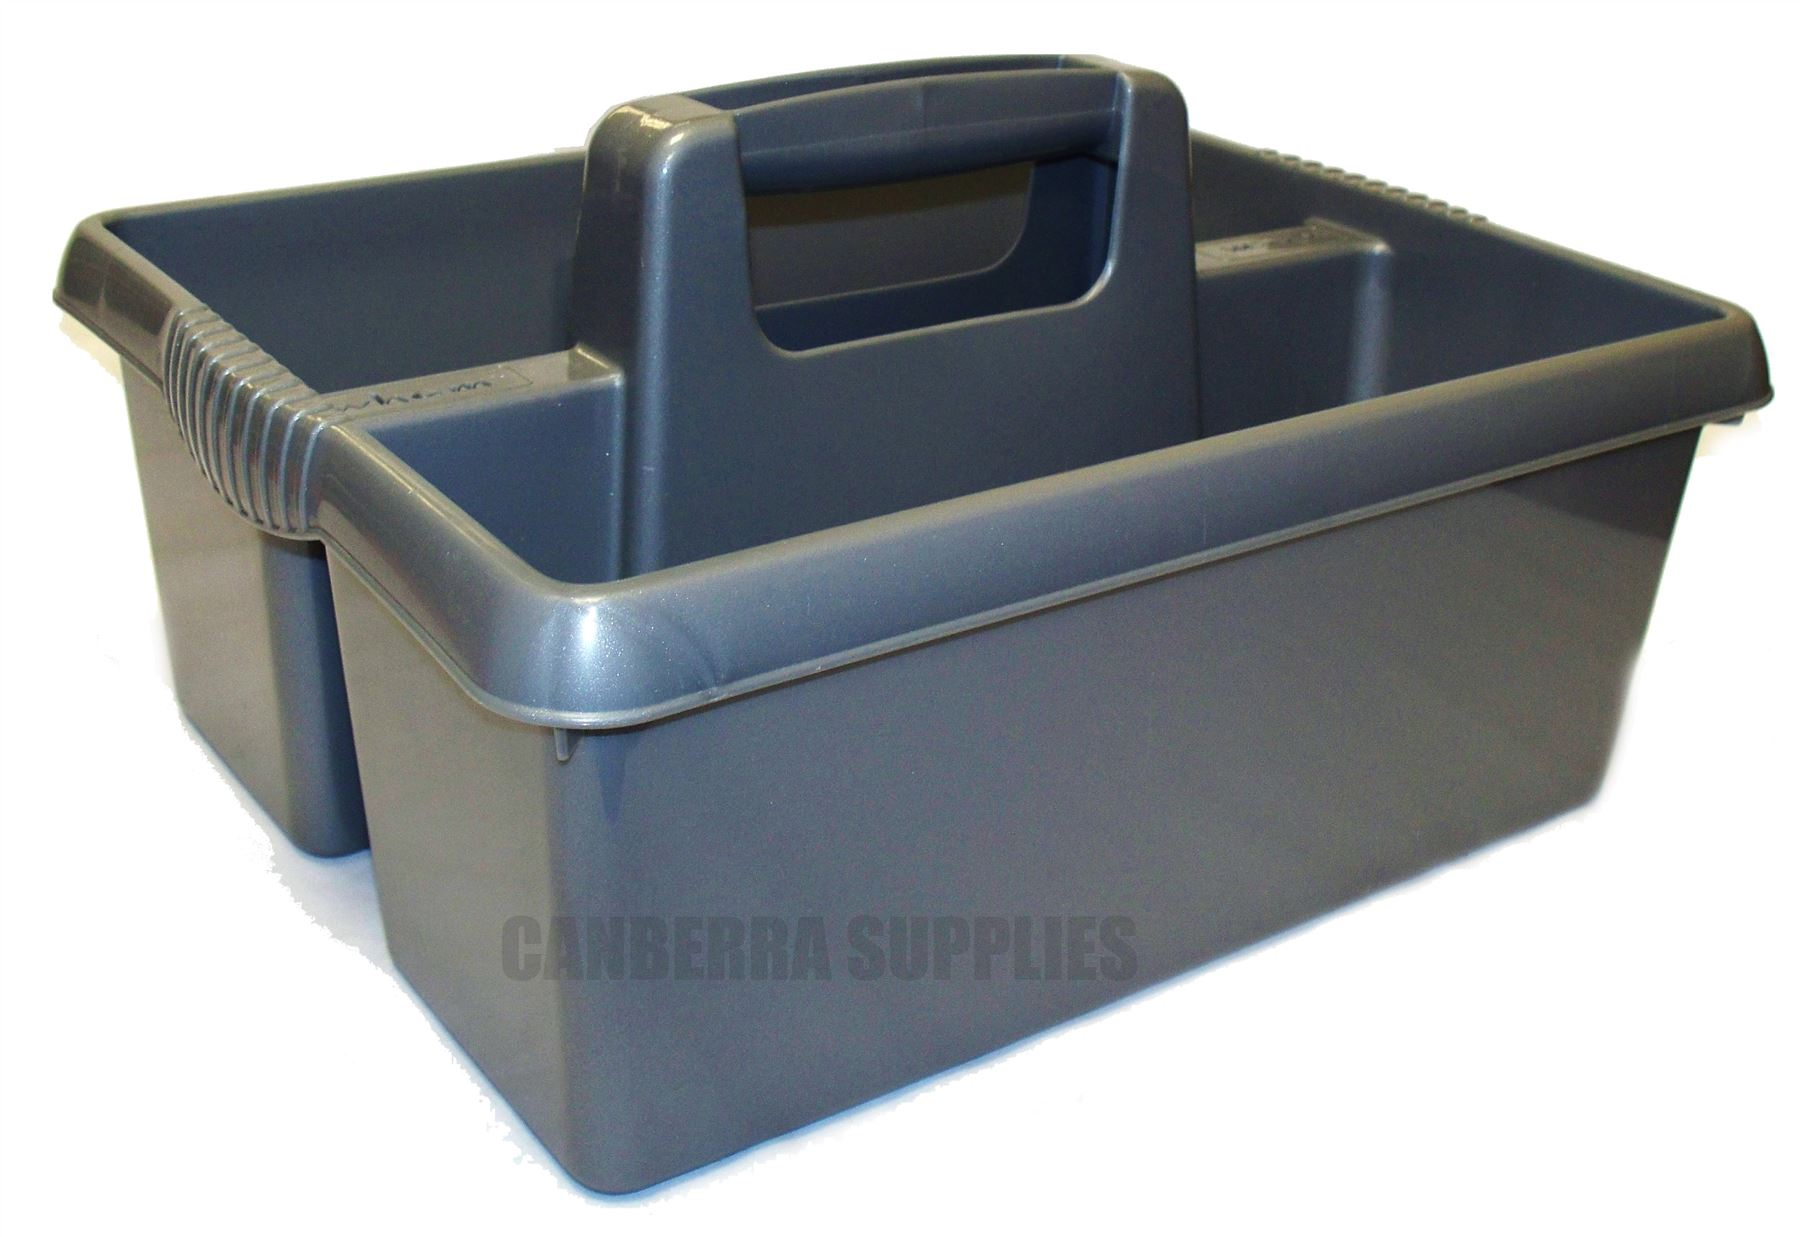 kitchen storage caddy wham plastic tool caddy organiser kitchen office tidy 3130